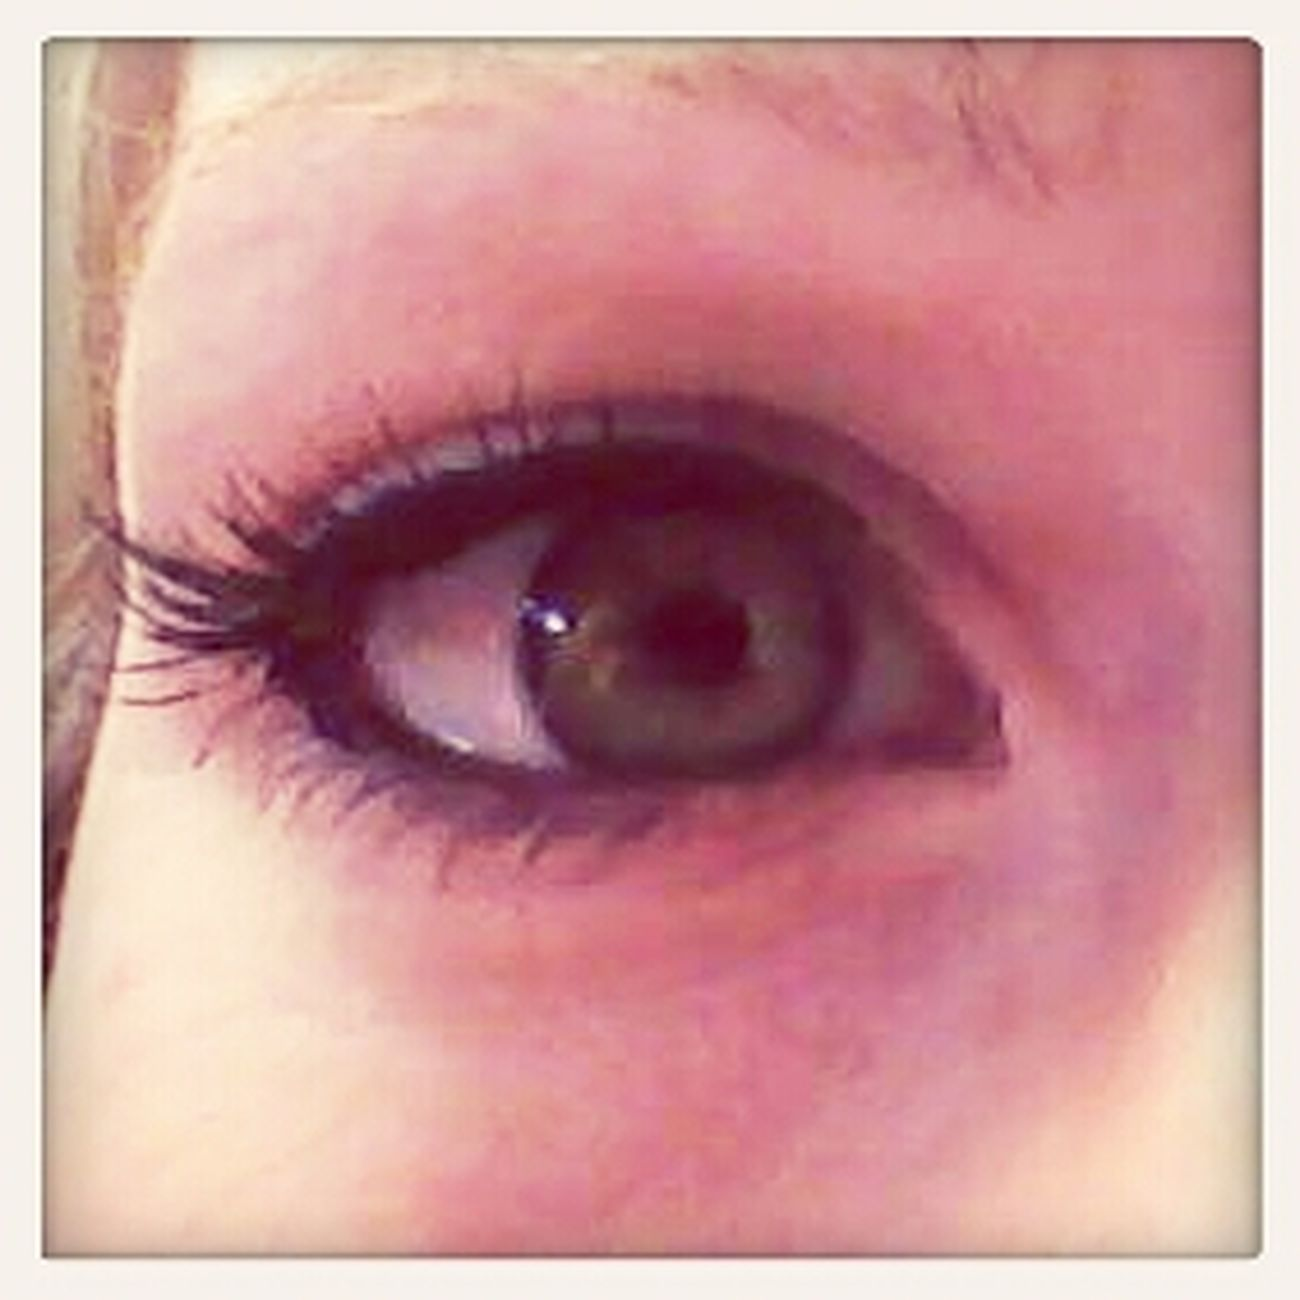 Perfect new eyelashes :-)